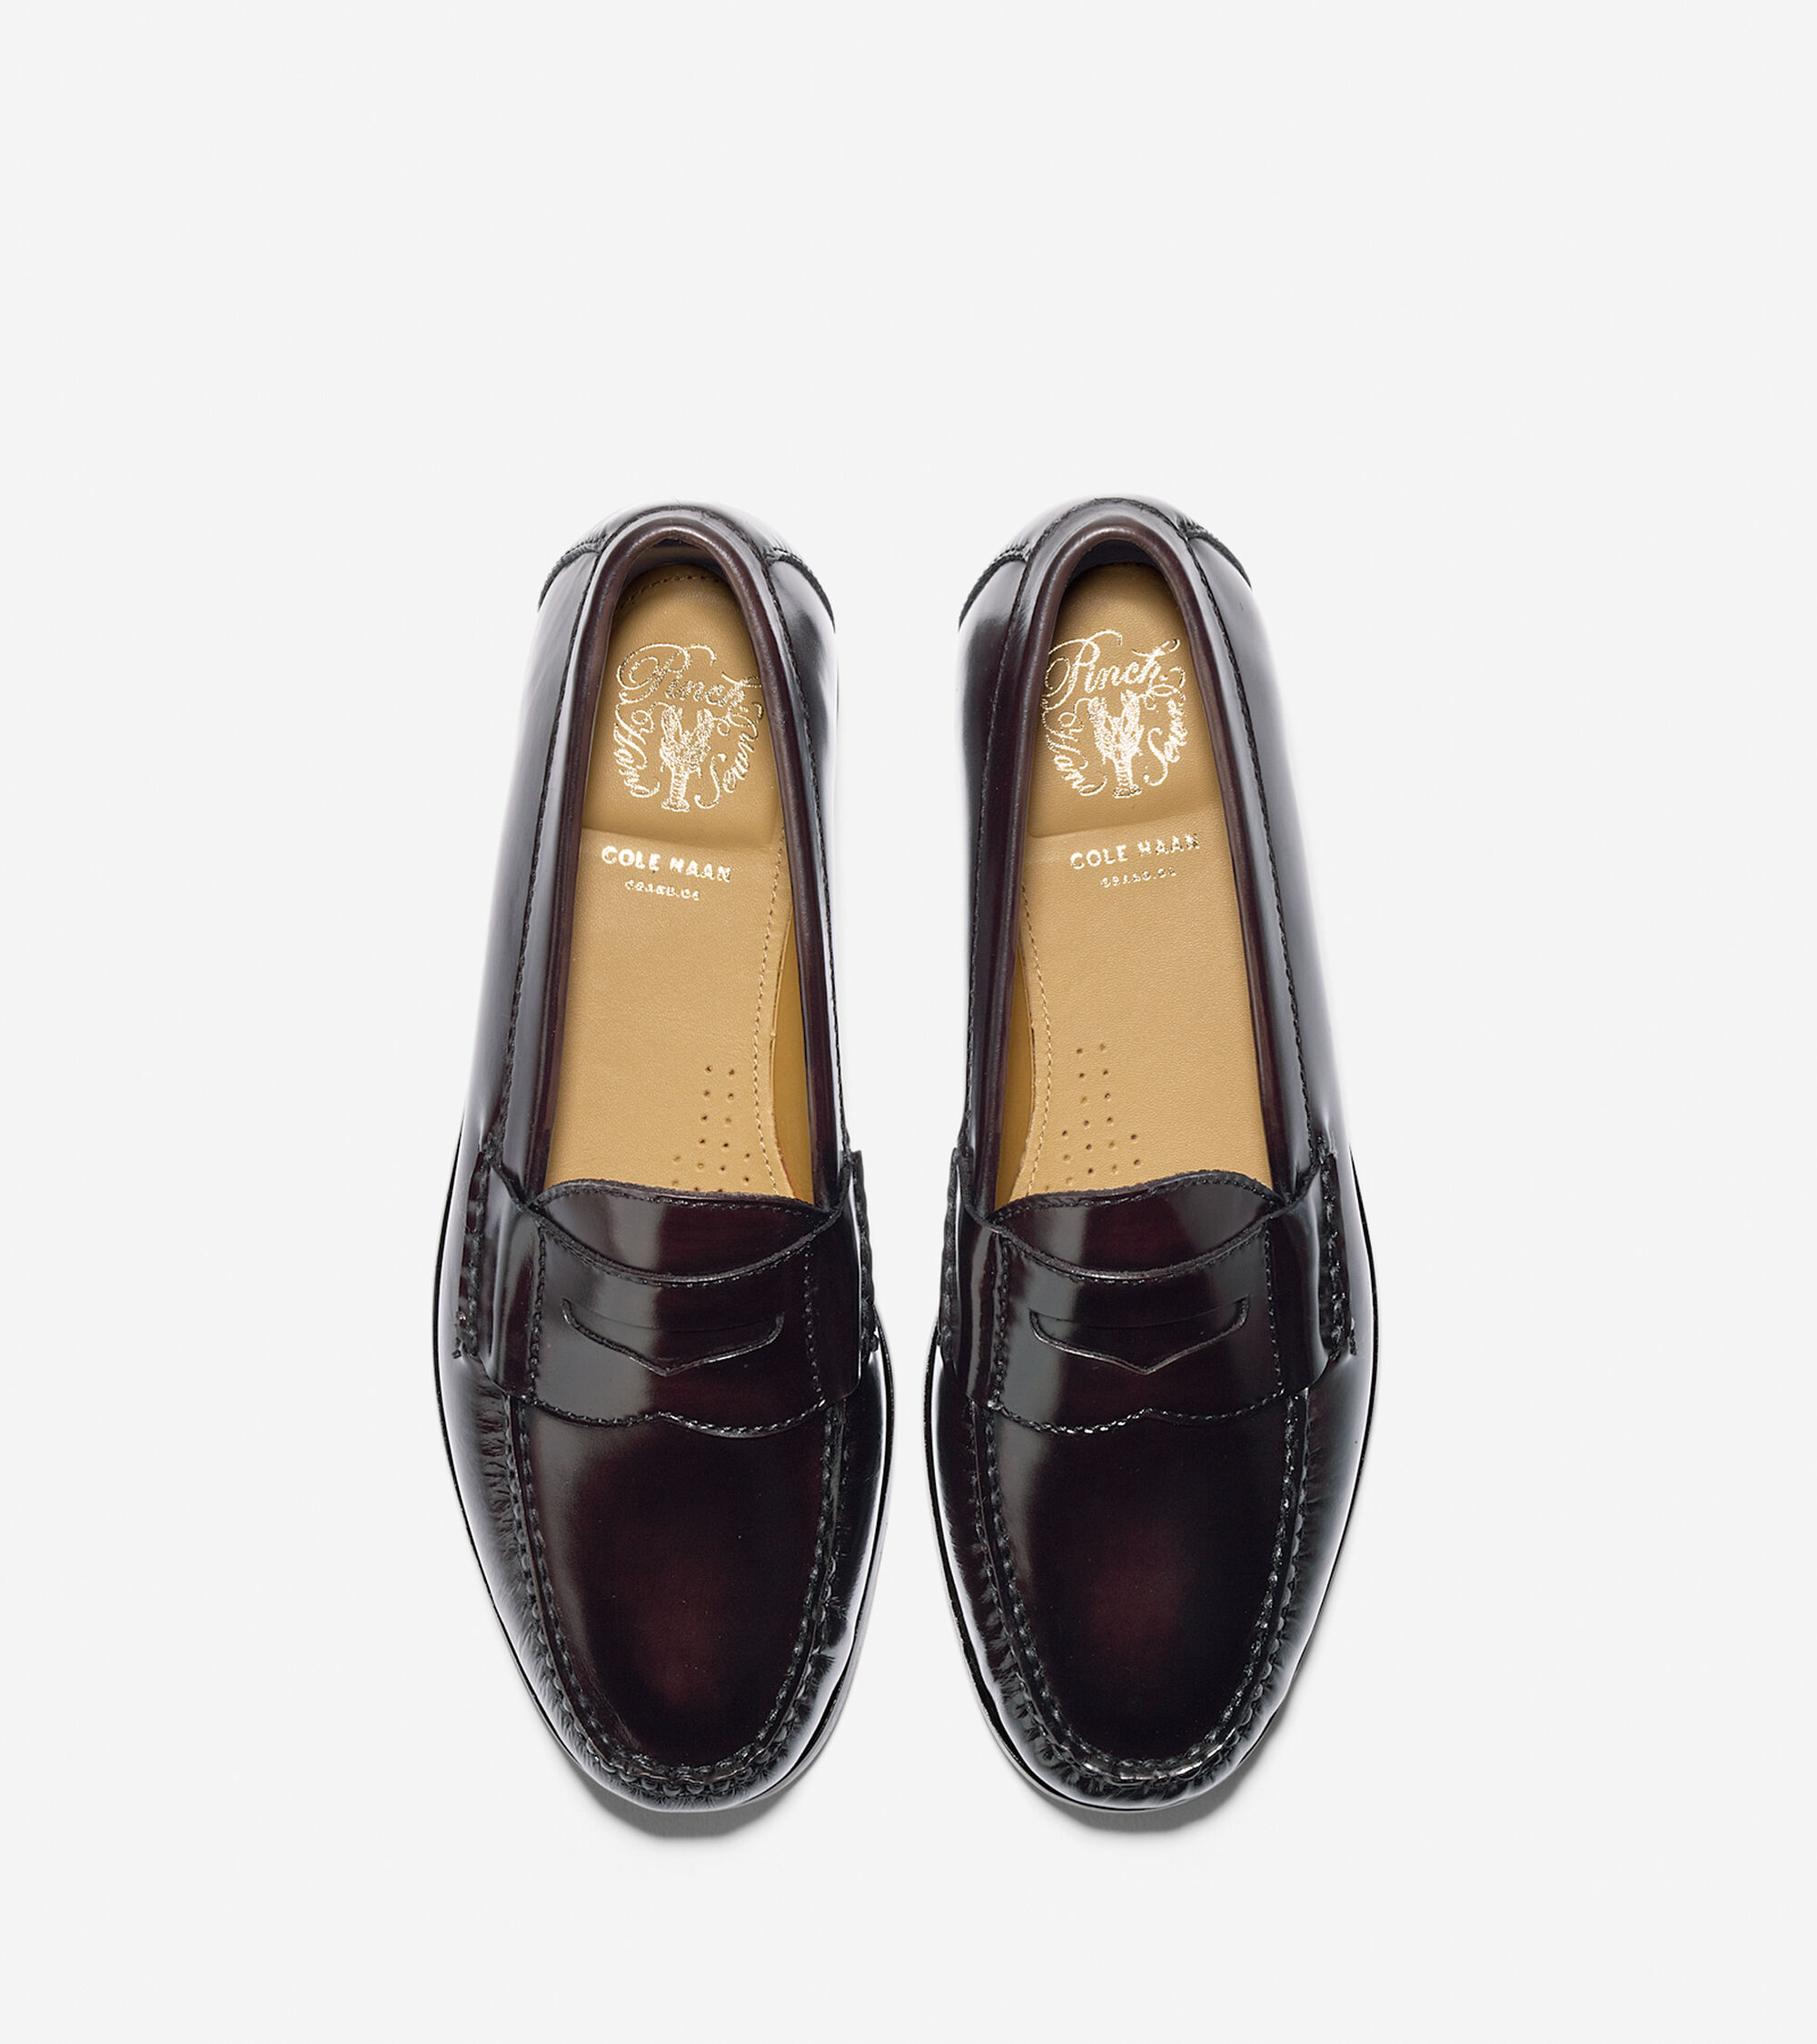 baca21b2837 Pinch Grand Penny Loafers in Mahogany